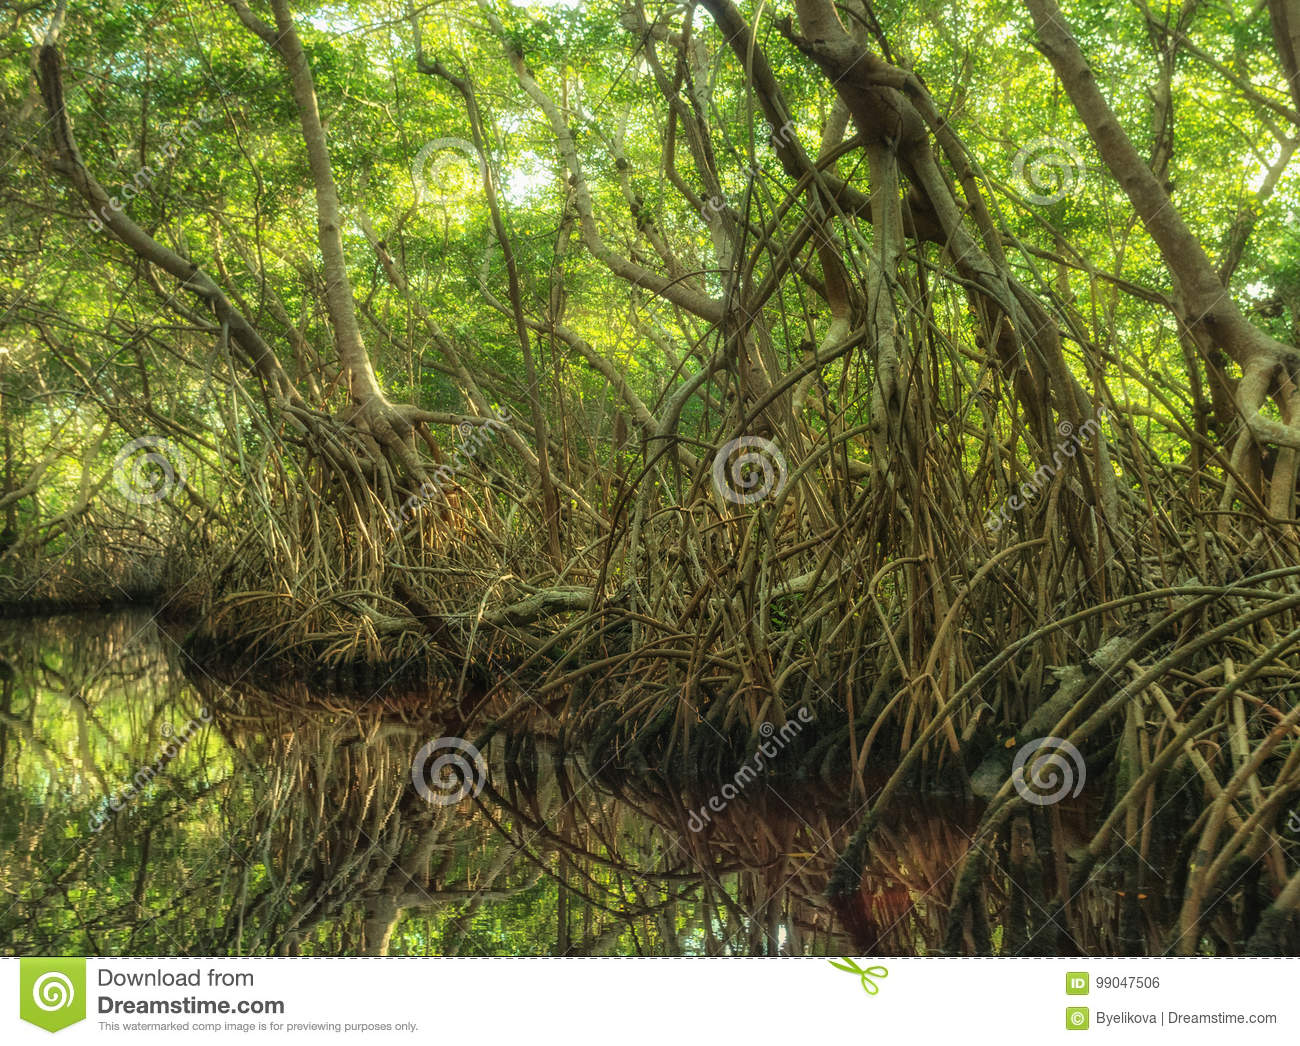 Mangrove forest in Sian Kaan, biosphere reserve, Quintana Roo, Mexico